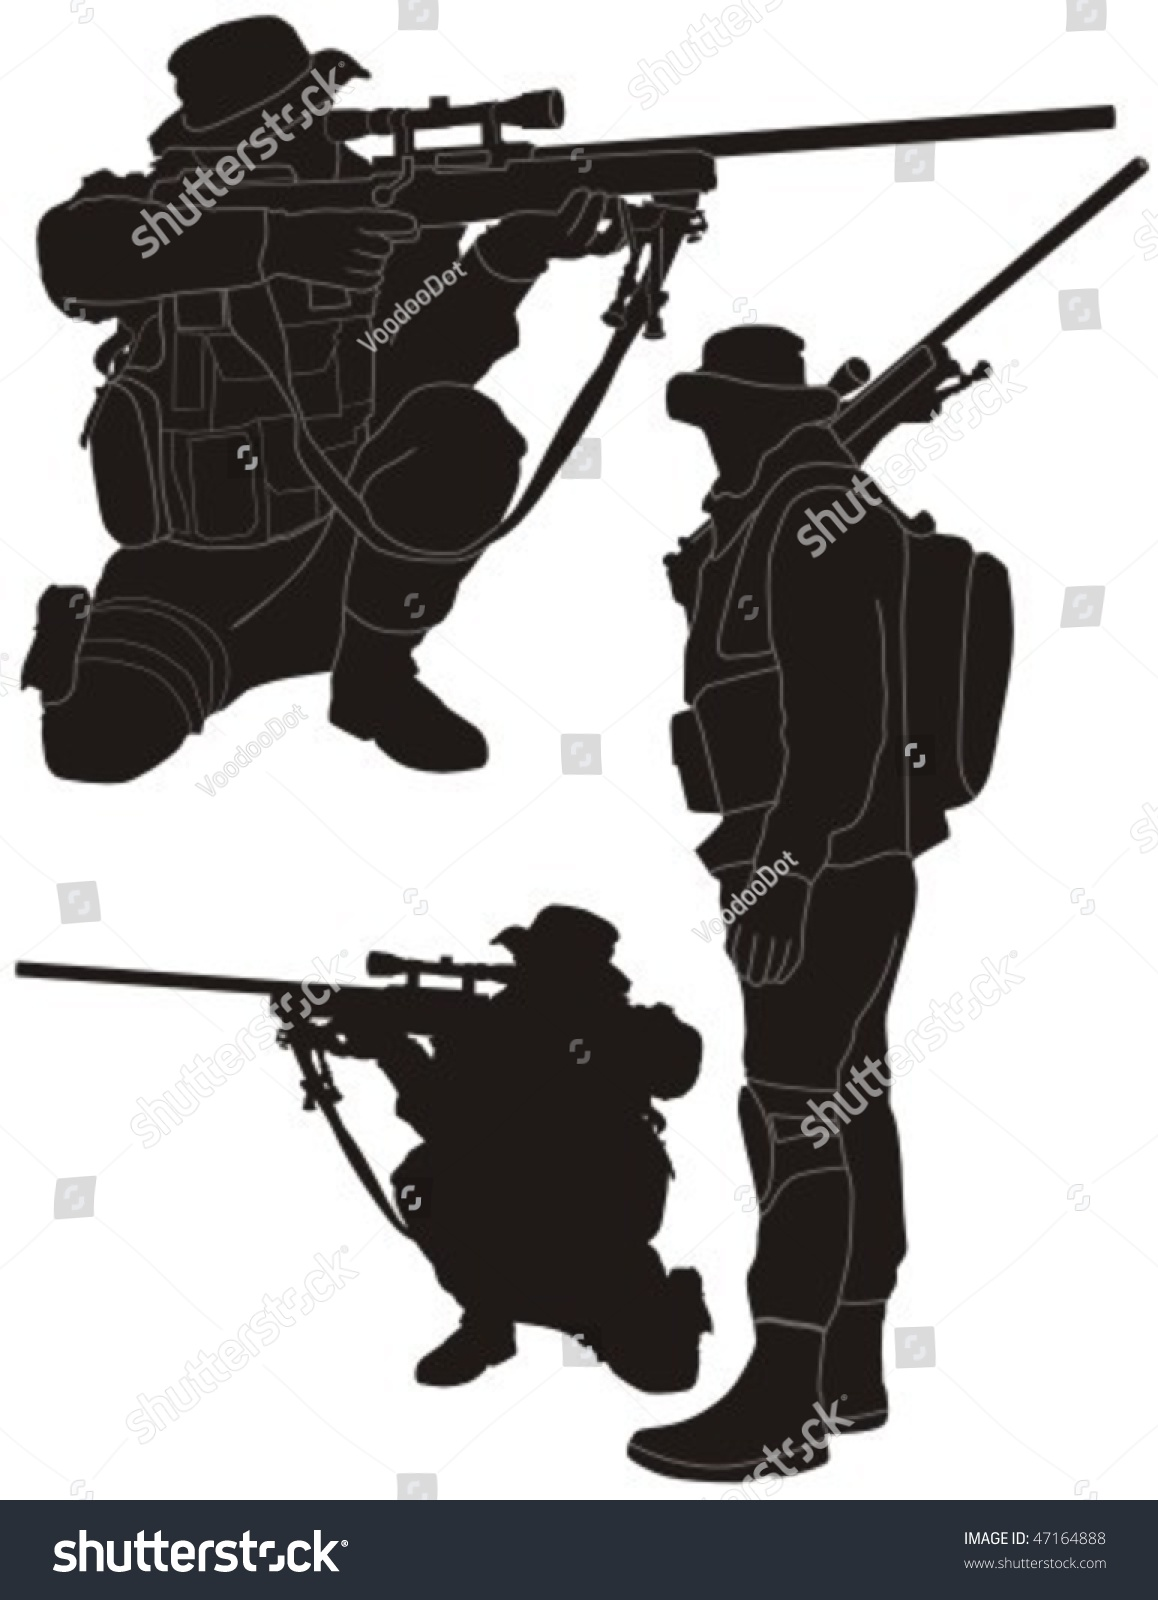 Sniper Silhouette Stock Vector Illustration 47164888 ...